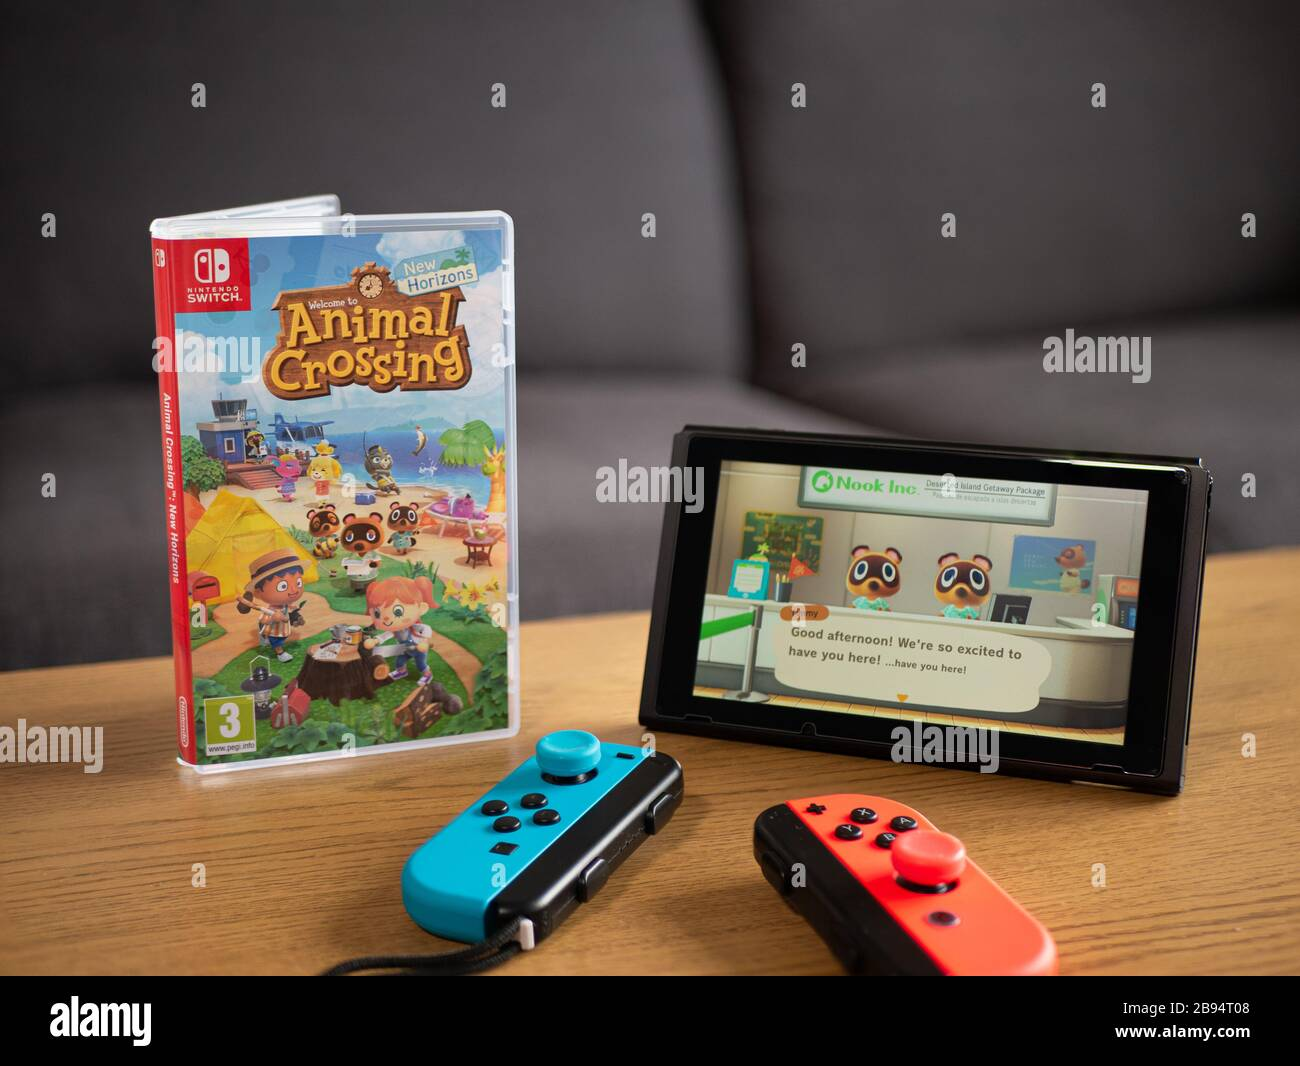 animal crossing new horizons switch controller